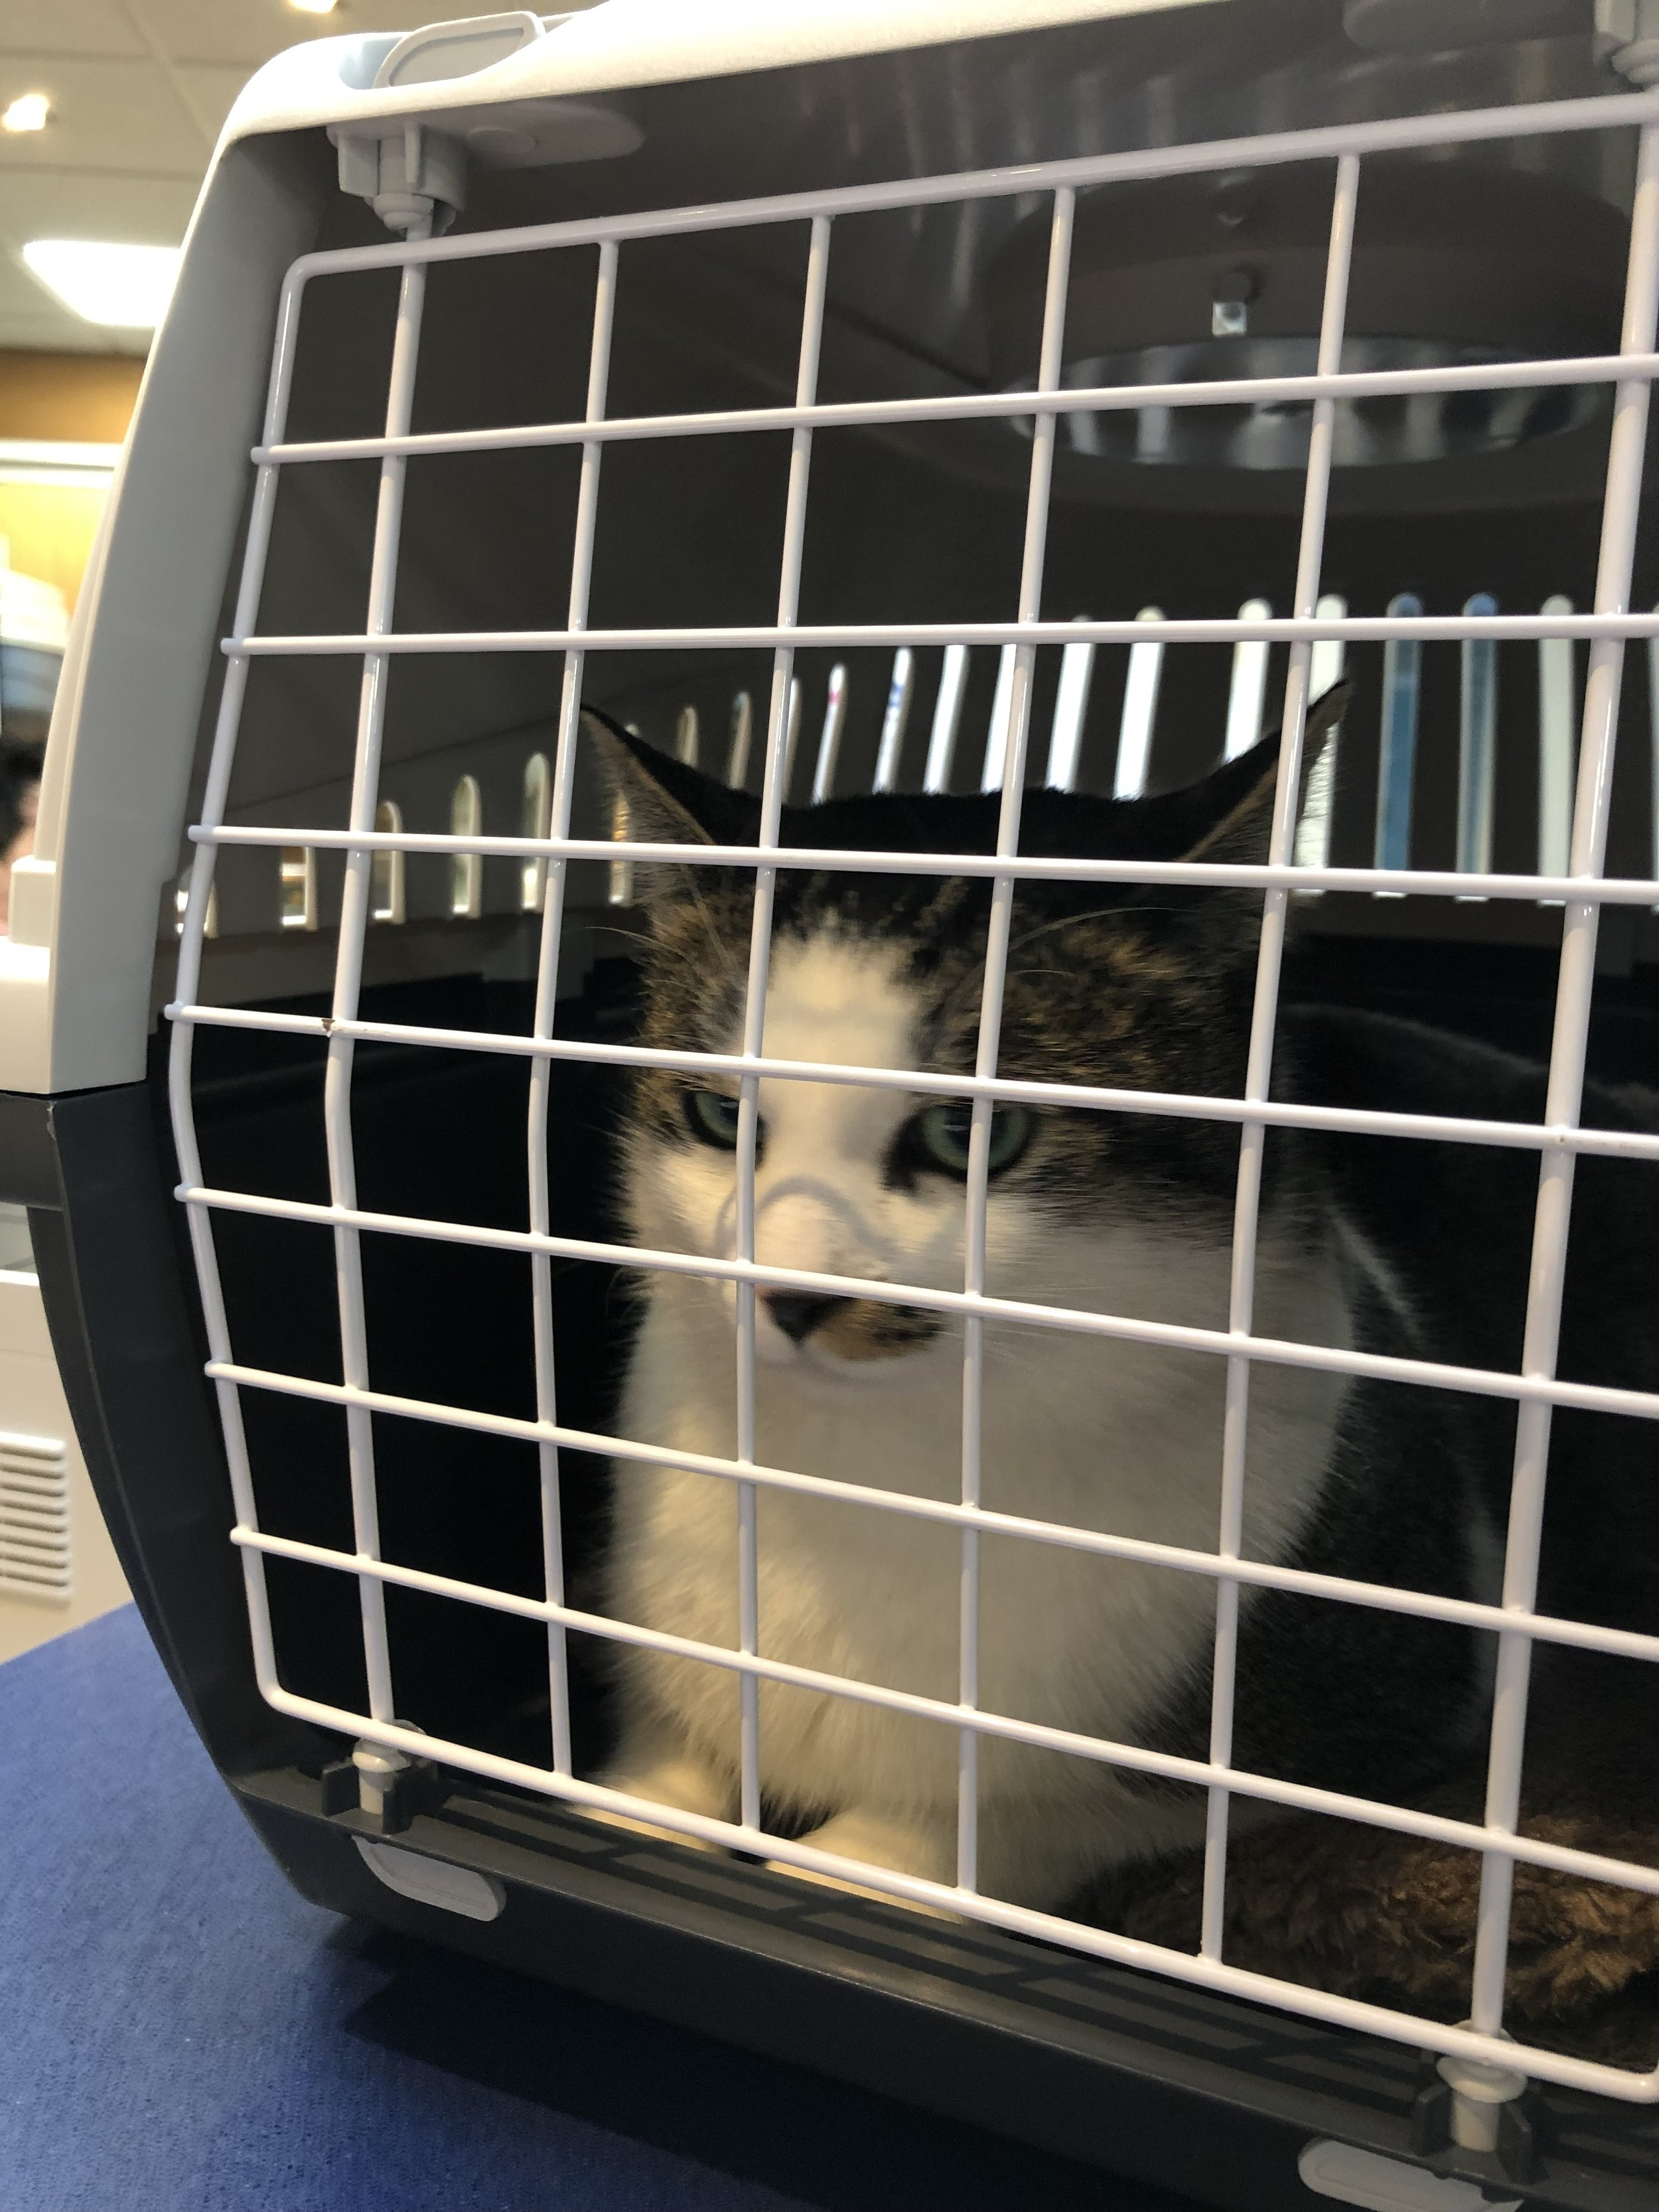 December 1, 2018: Milo at the shelter, waiting to come home with us.